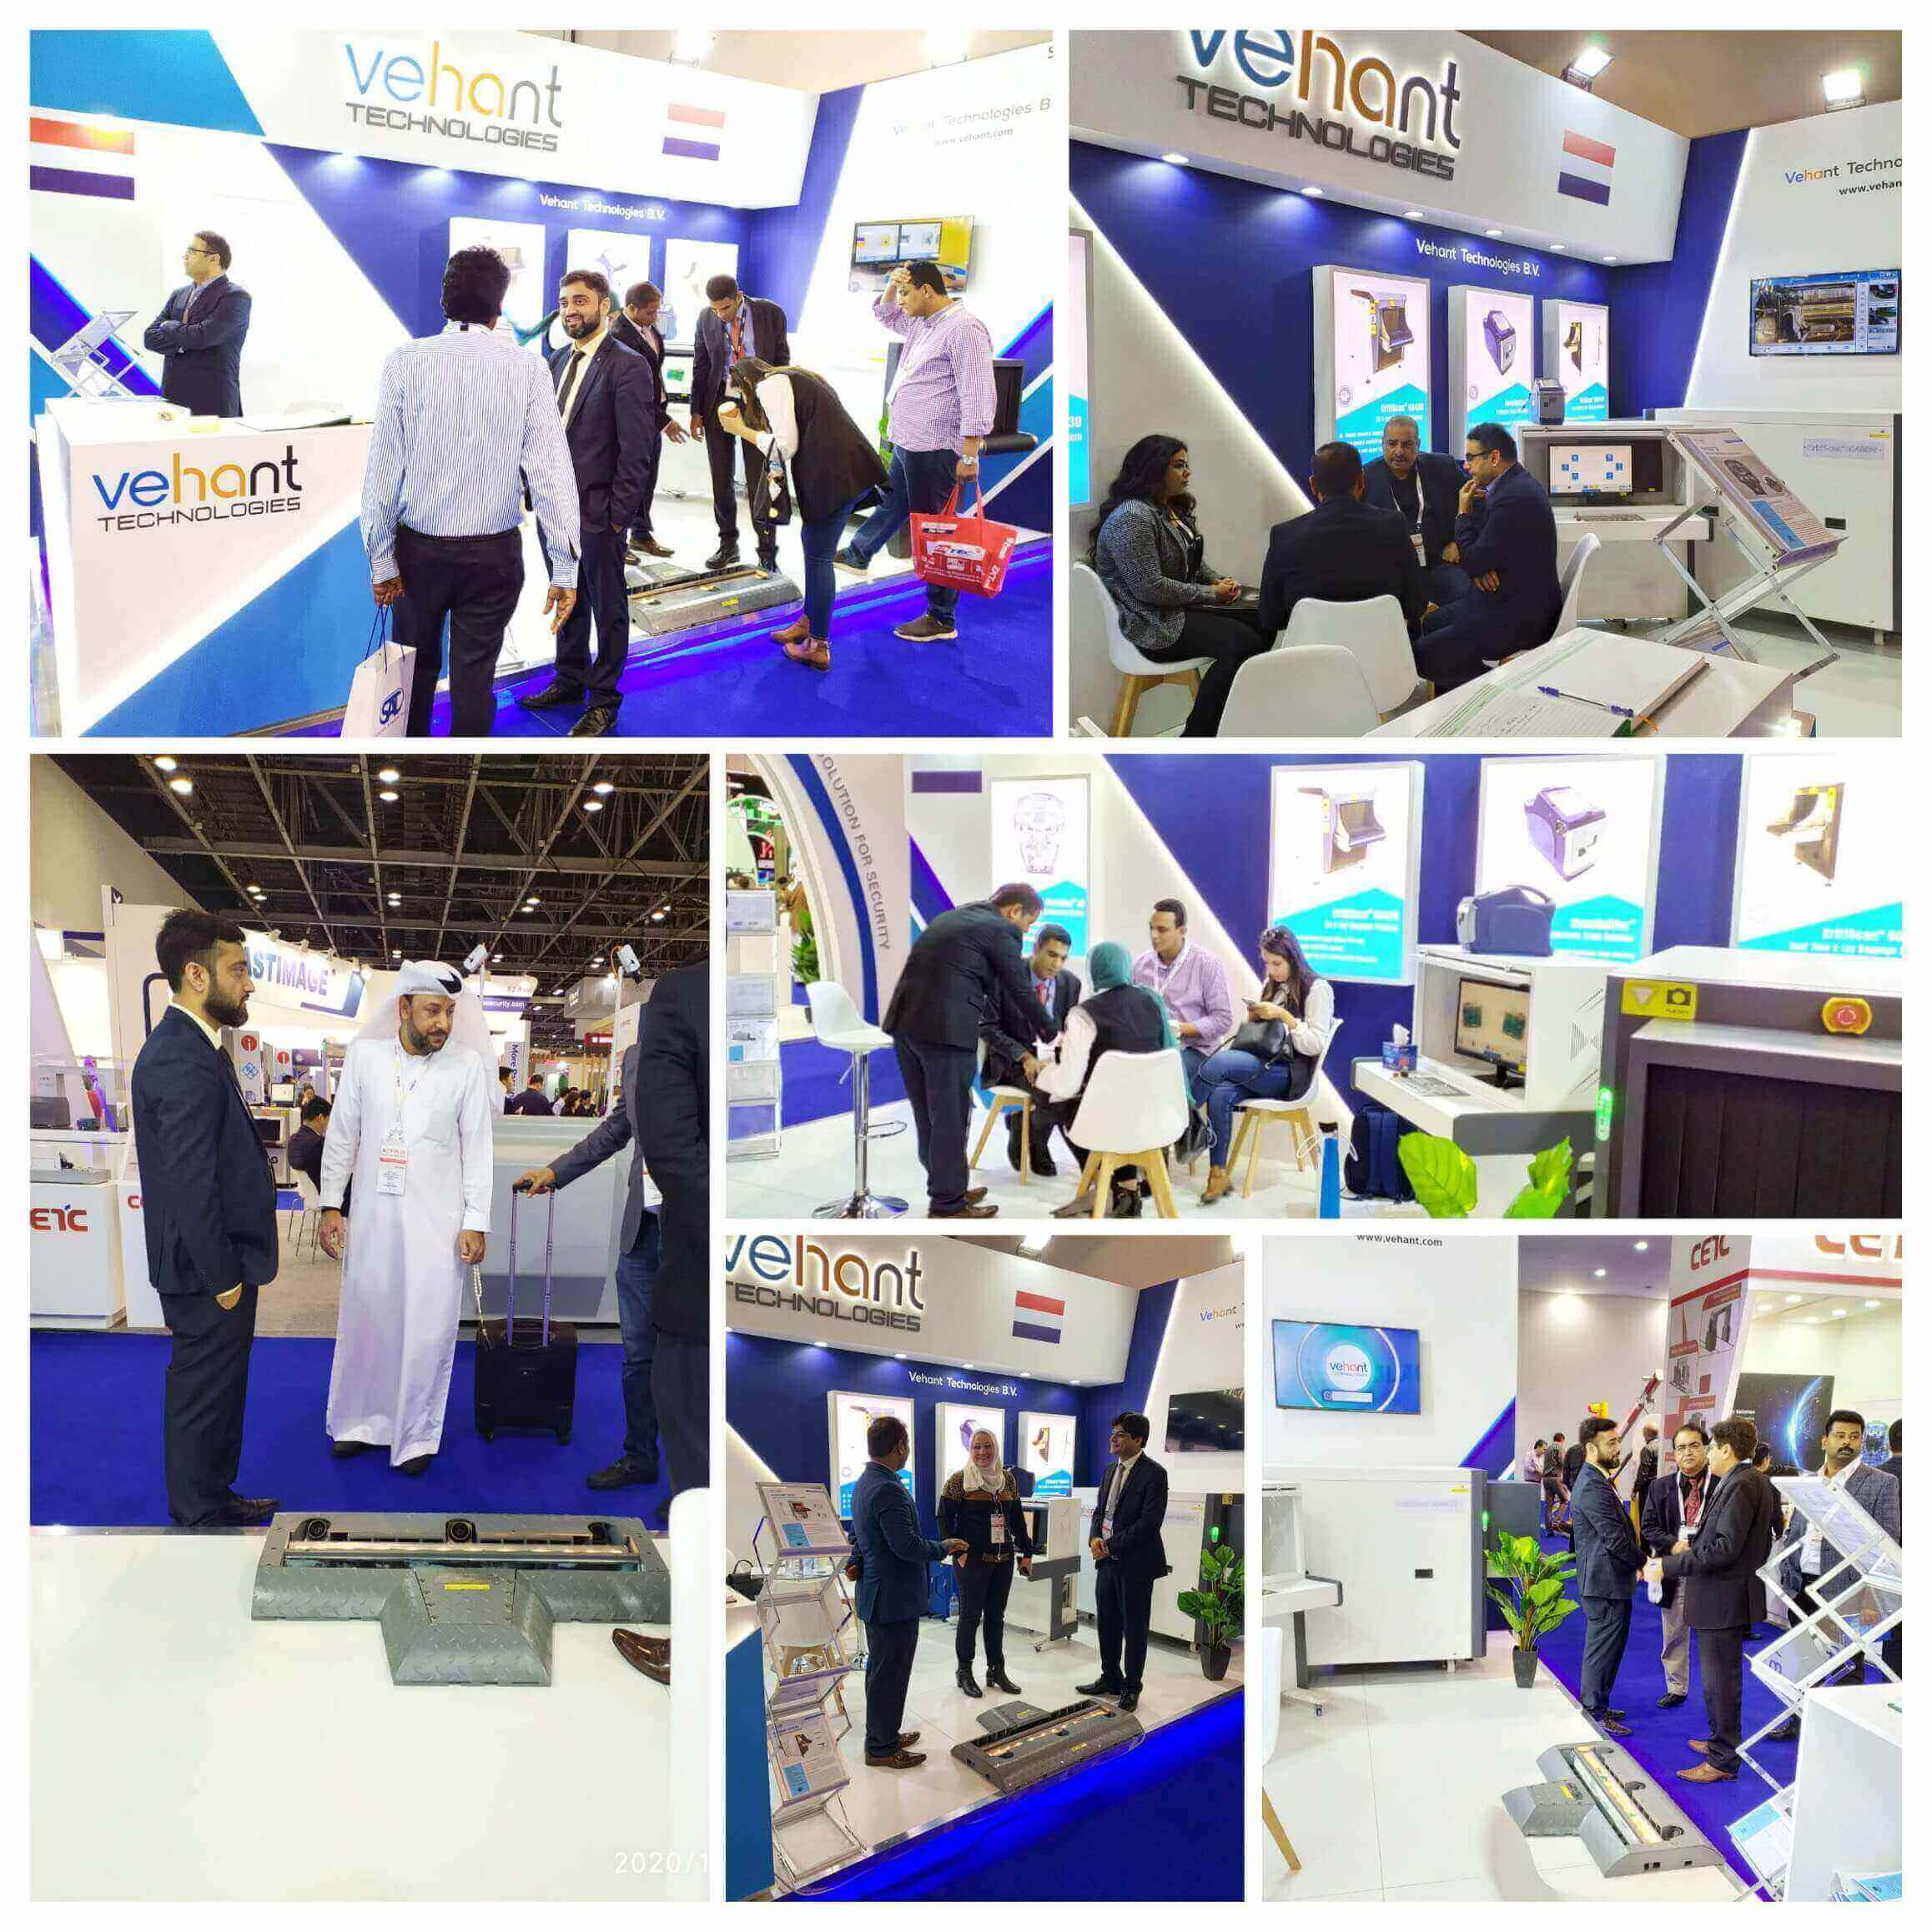 Intersec Dubai 2020 concluded for Vehant Technologies on a positive note. We exhibited our KritiScan® 6040DV - Dual View X-ray Baggage Scanner, NuvoScan® (P) - Portable Under Vehicle Scanning System and NanoSniffer™ - Explosives Trace Detector and receive